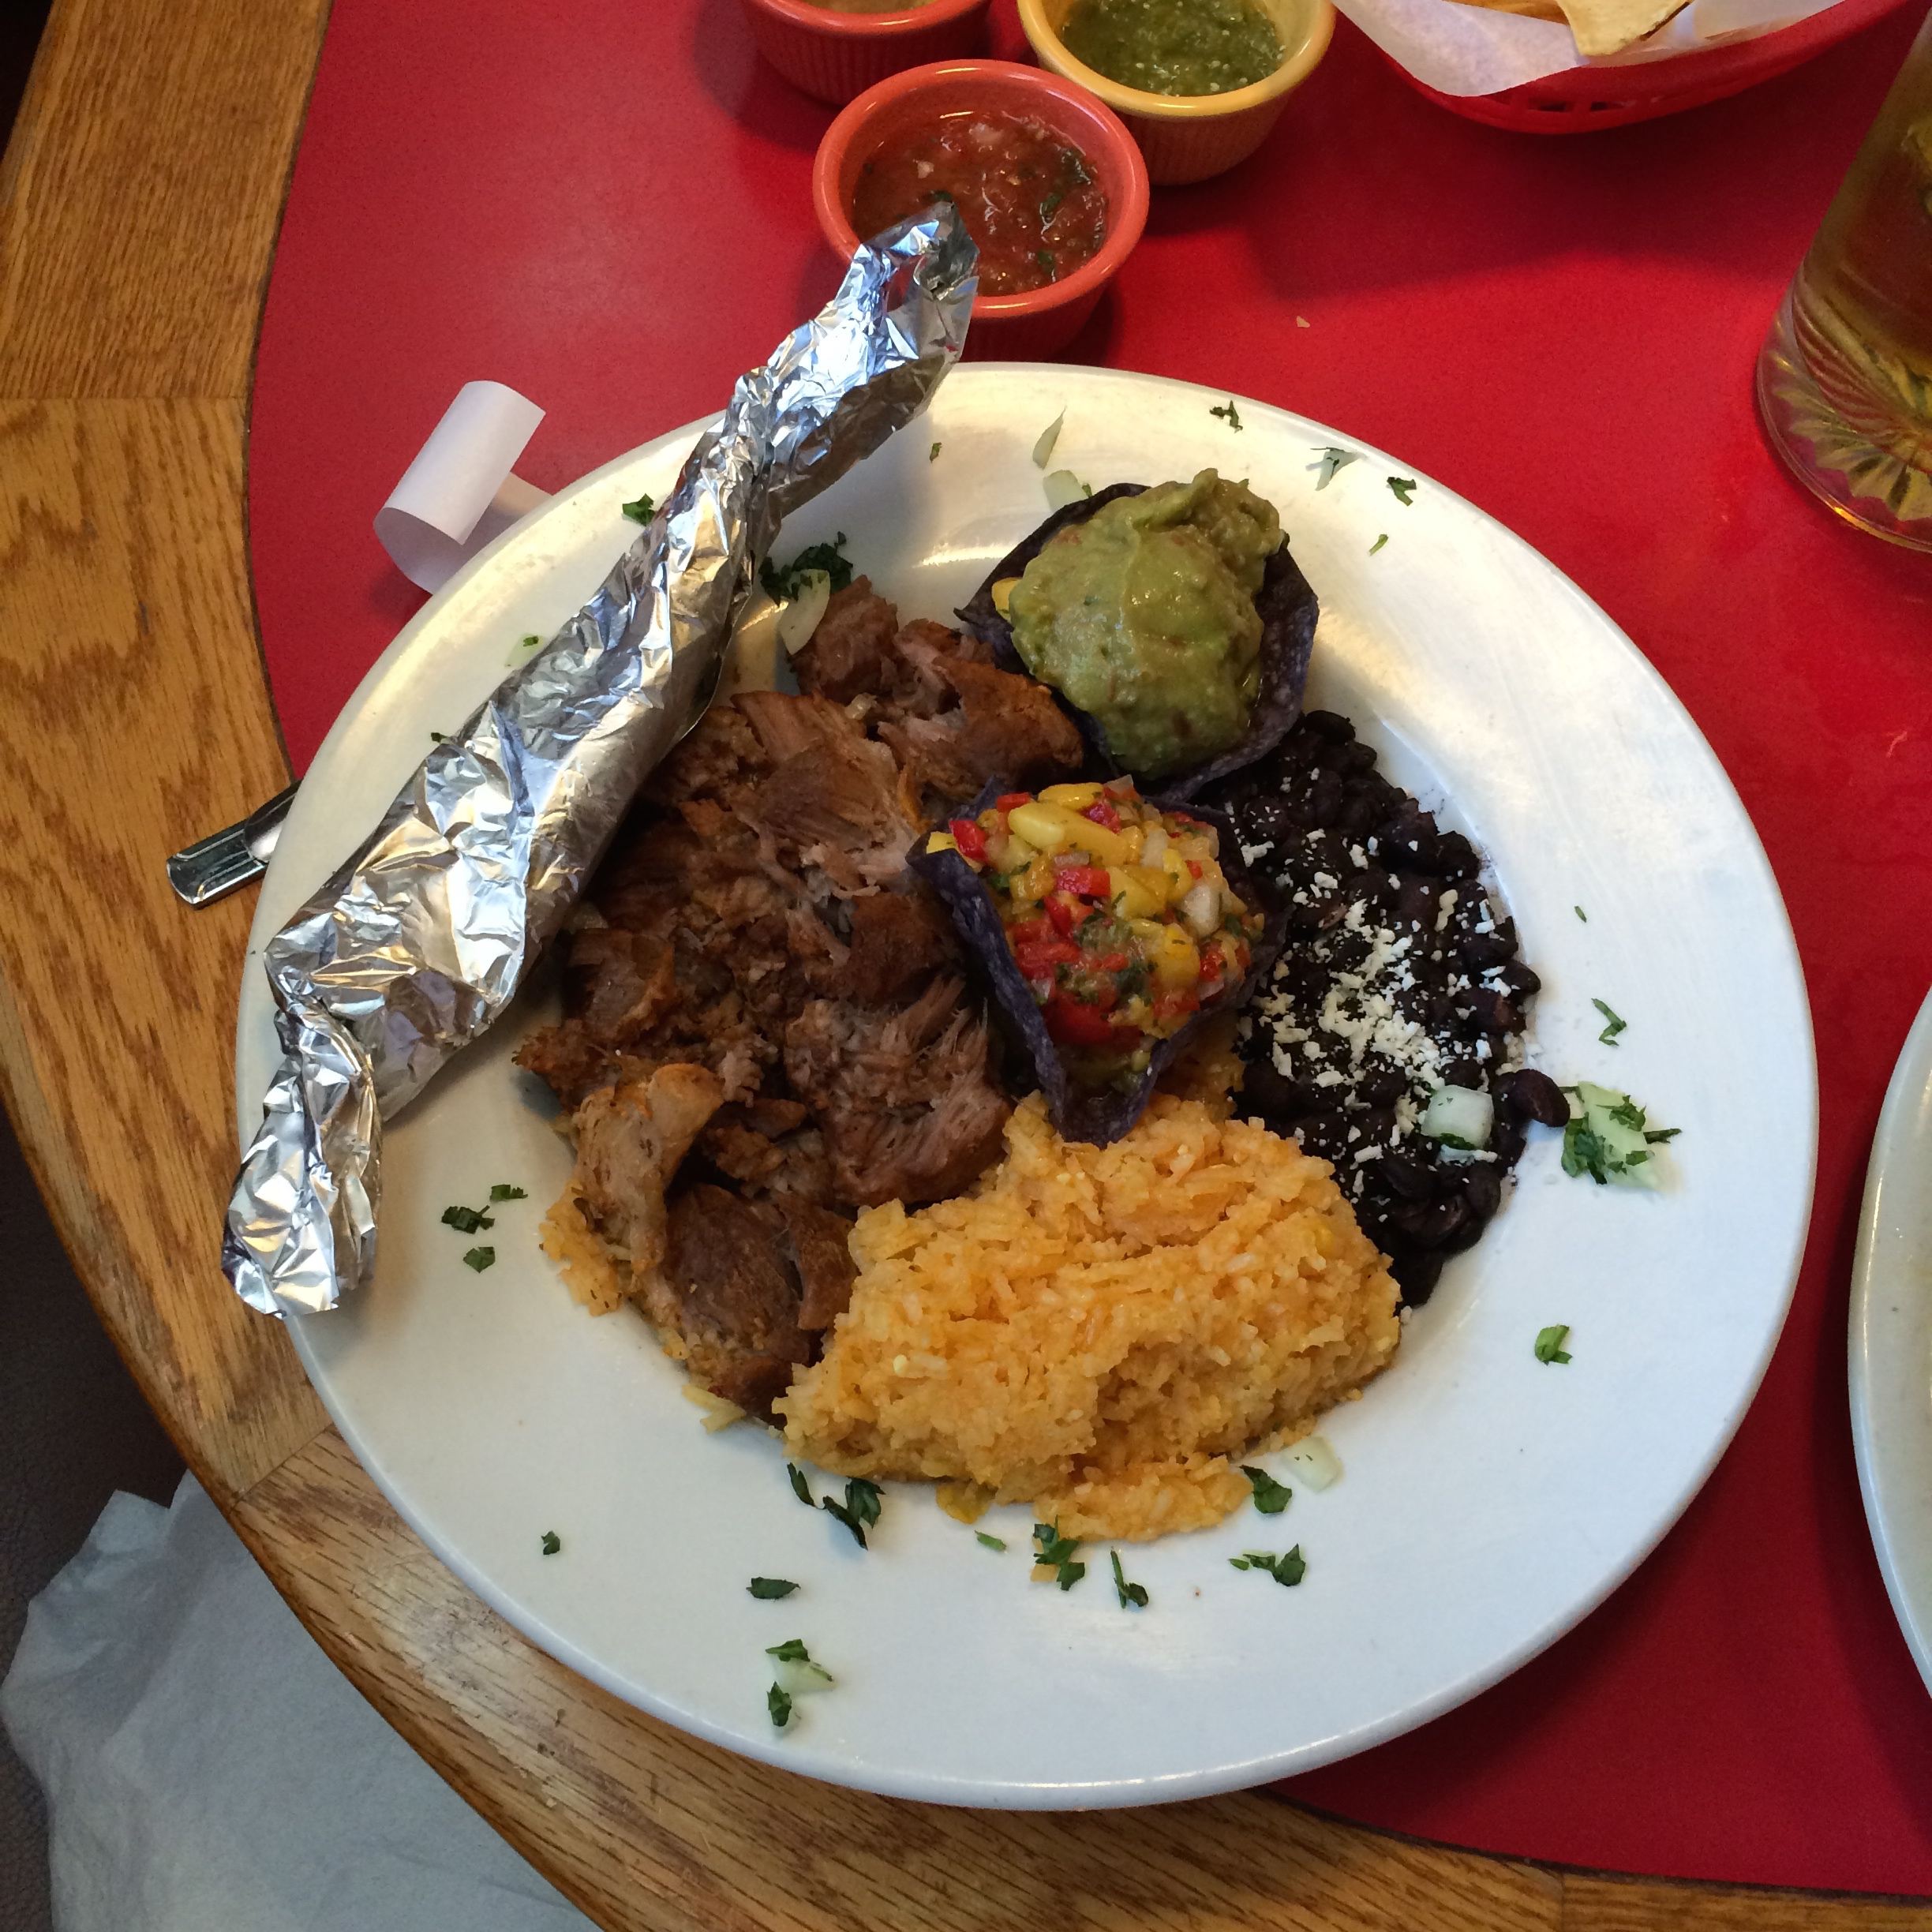 The Cochinita Pibil (Yucatan-style Pit Roasted pork) is one of many Gluten Free items on Salsa Brava's menu